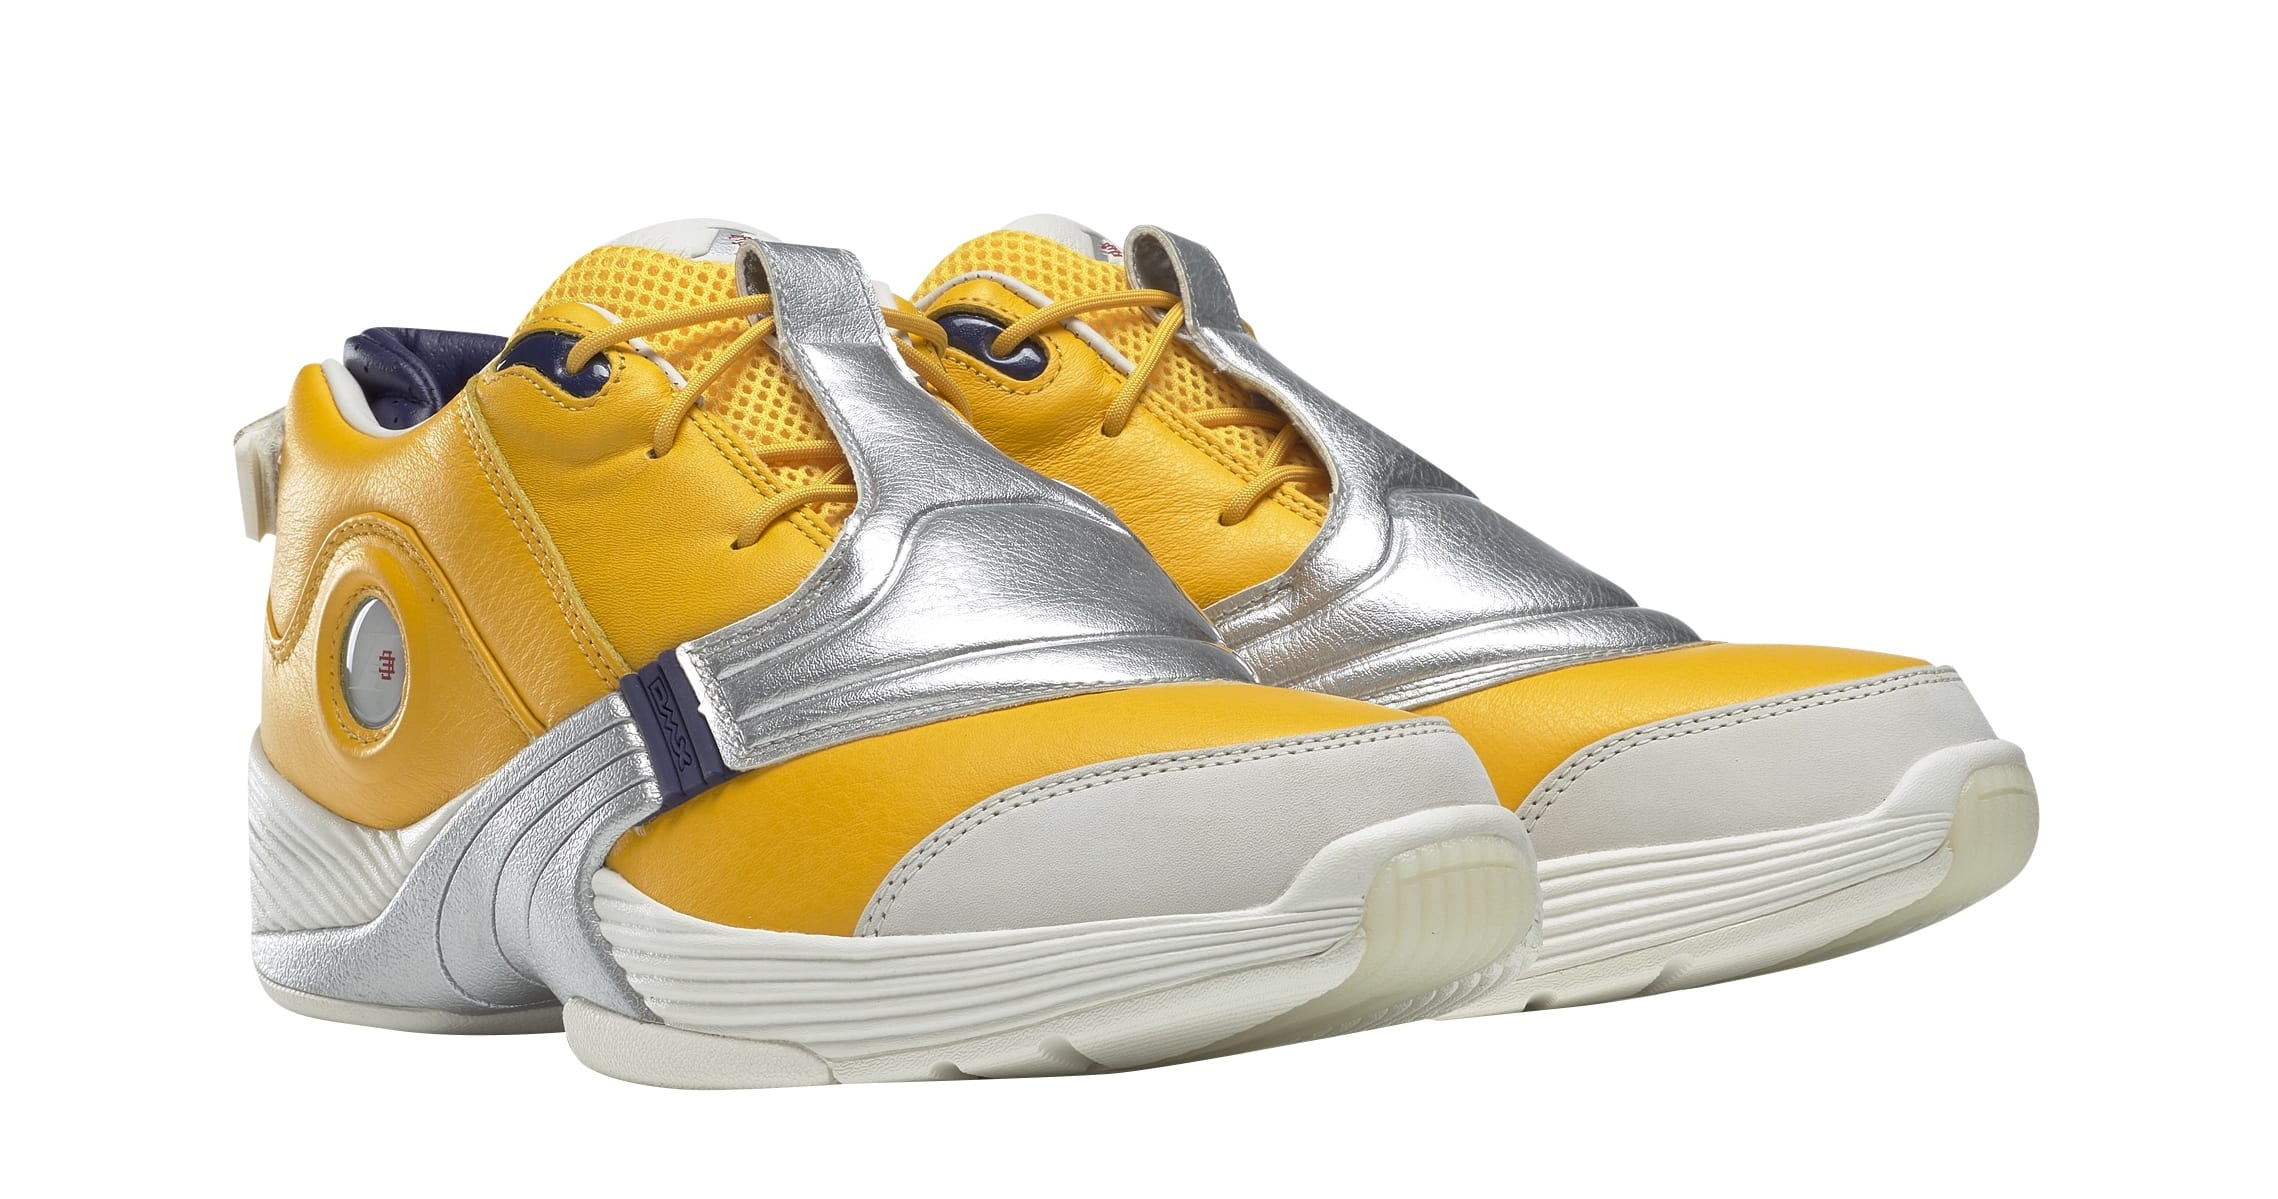 Eric Emanuel x Reebok Answer 5 (Yellow)